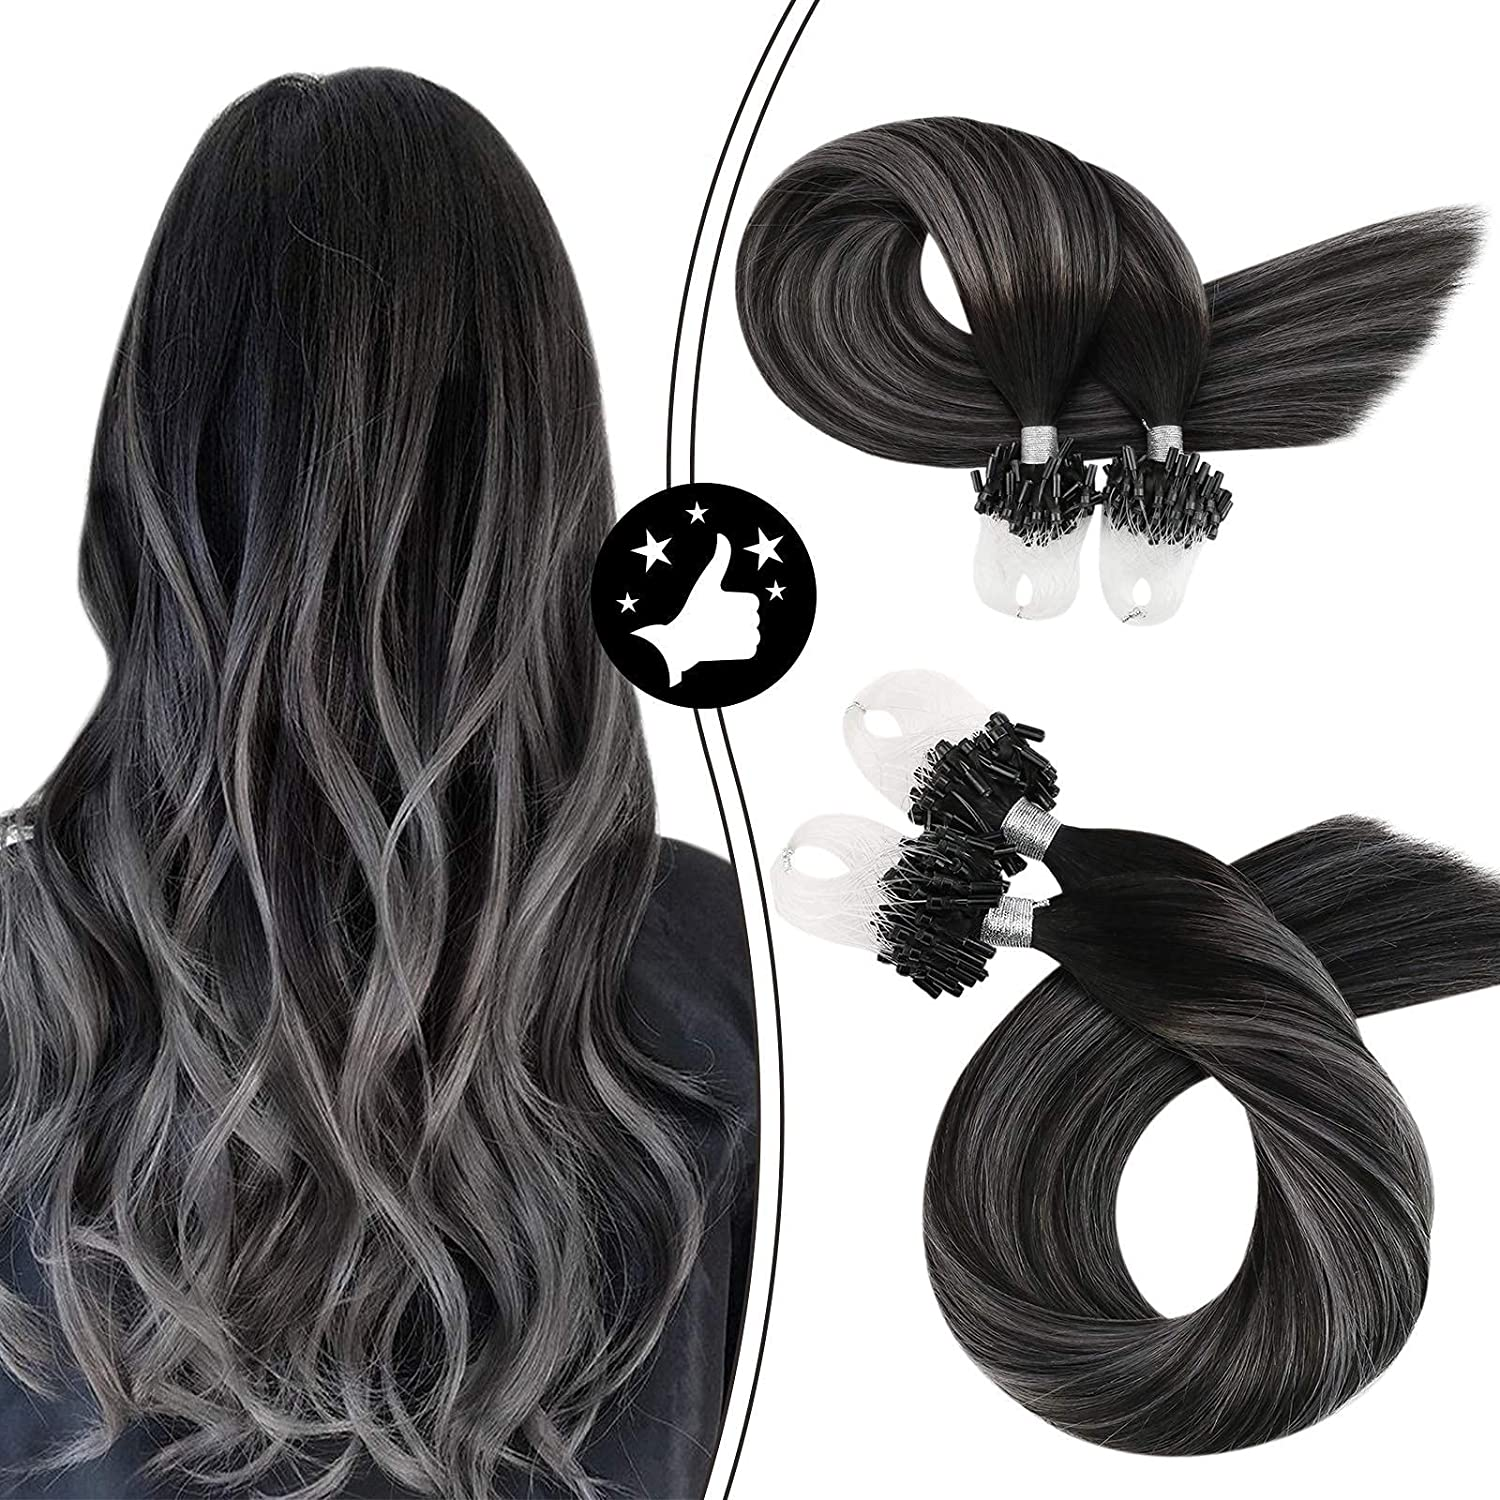 Moresoo High quality Micro Ring Hair Extensions free shipping E Human 18inch Loop